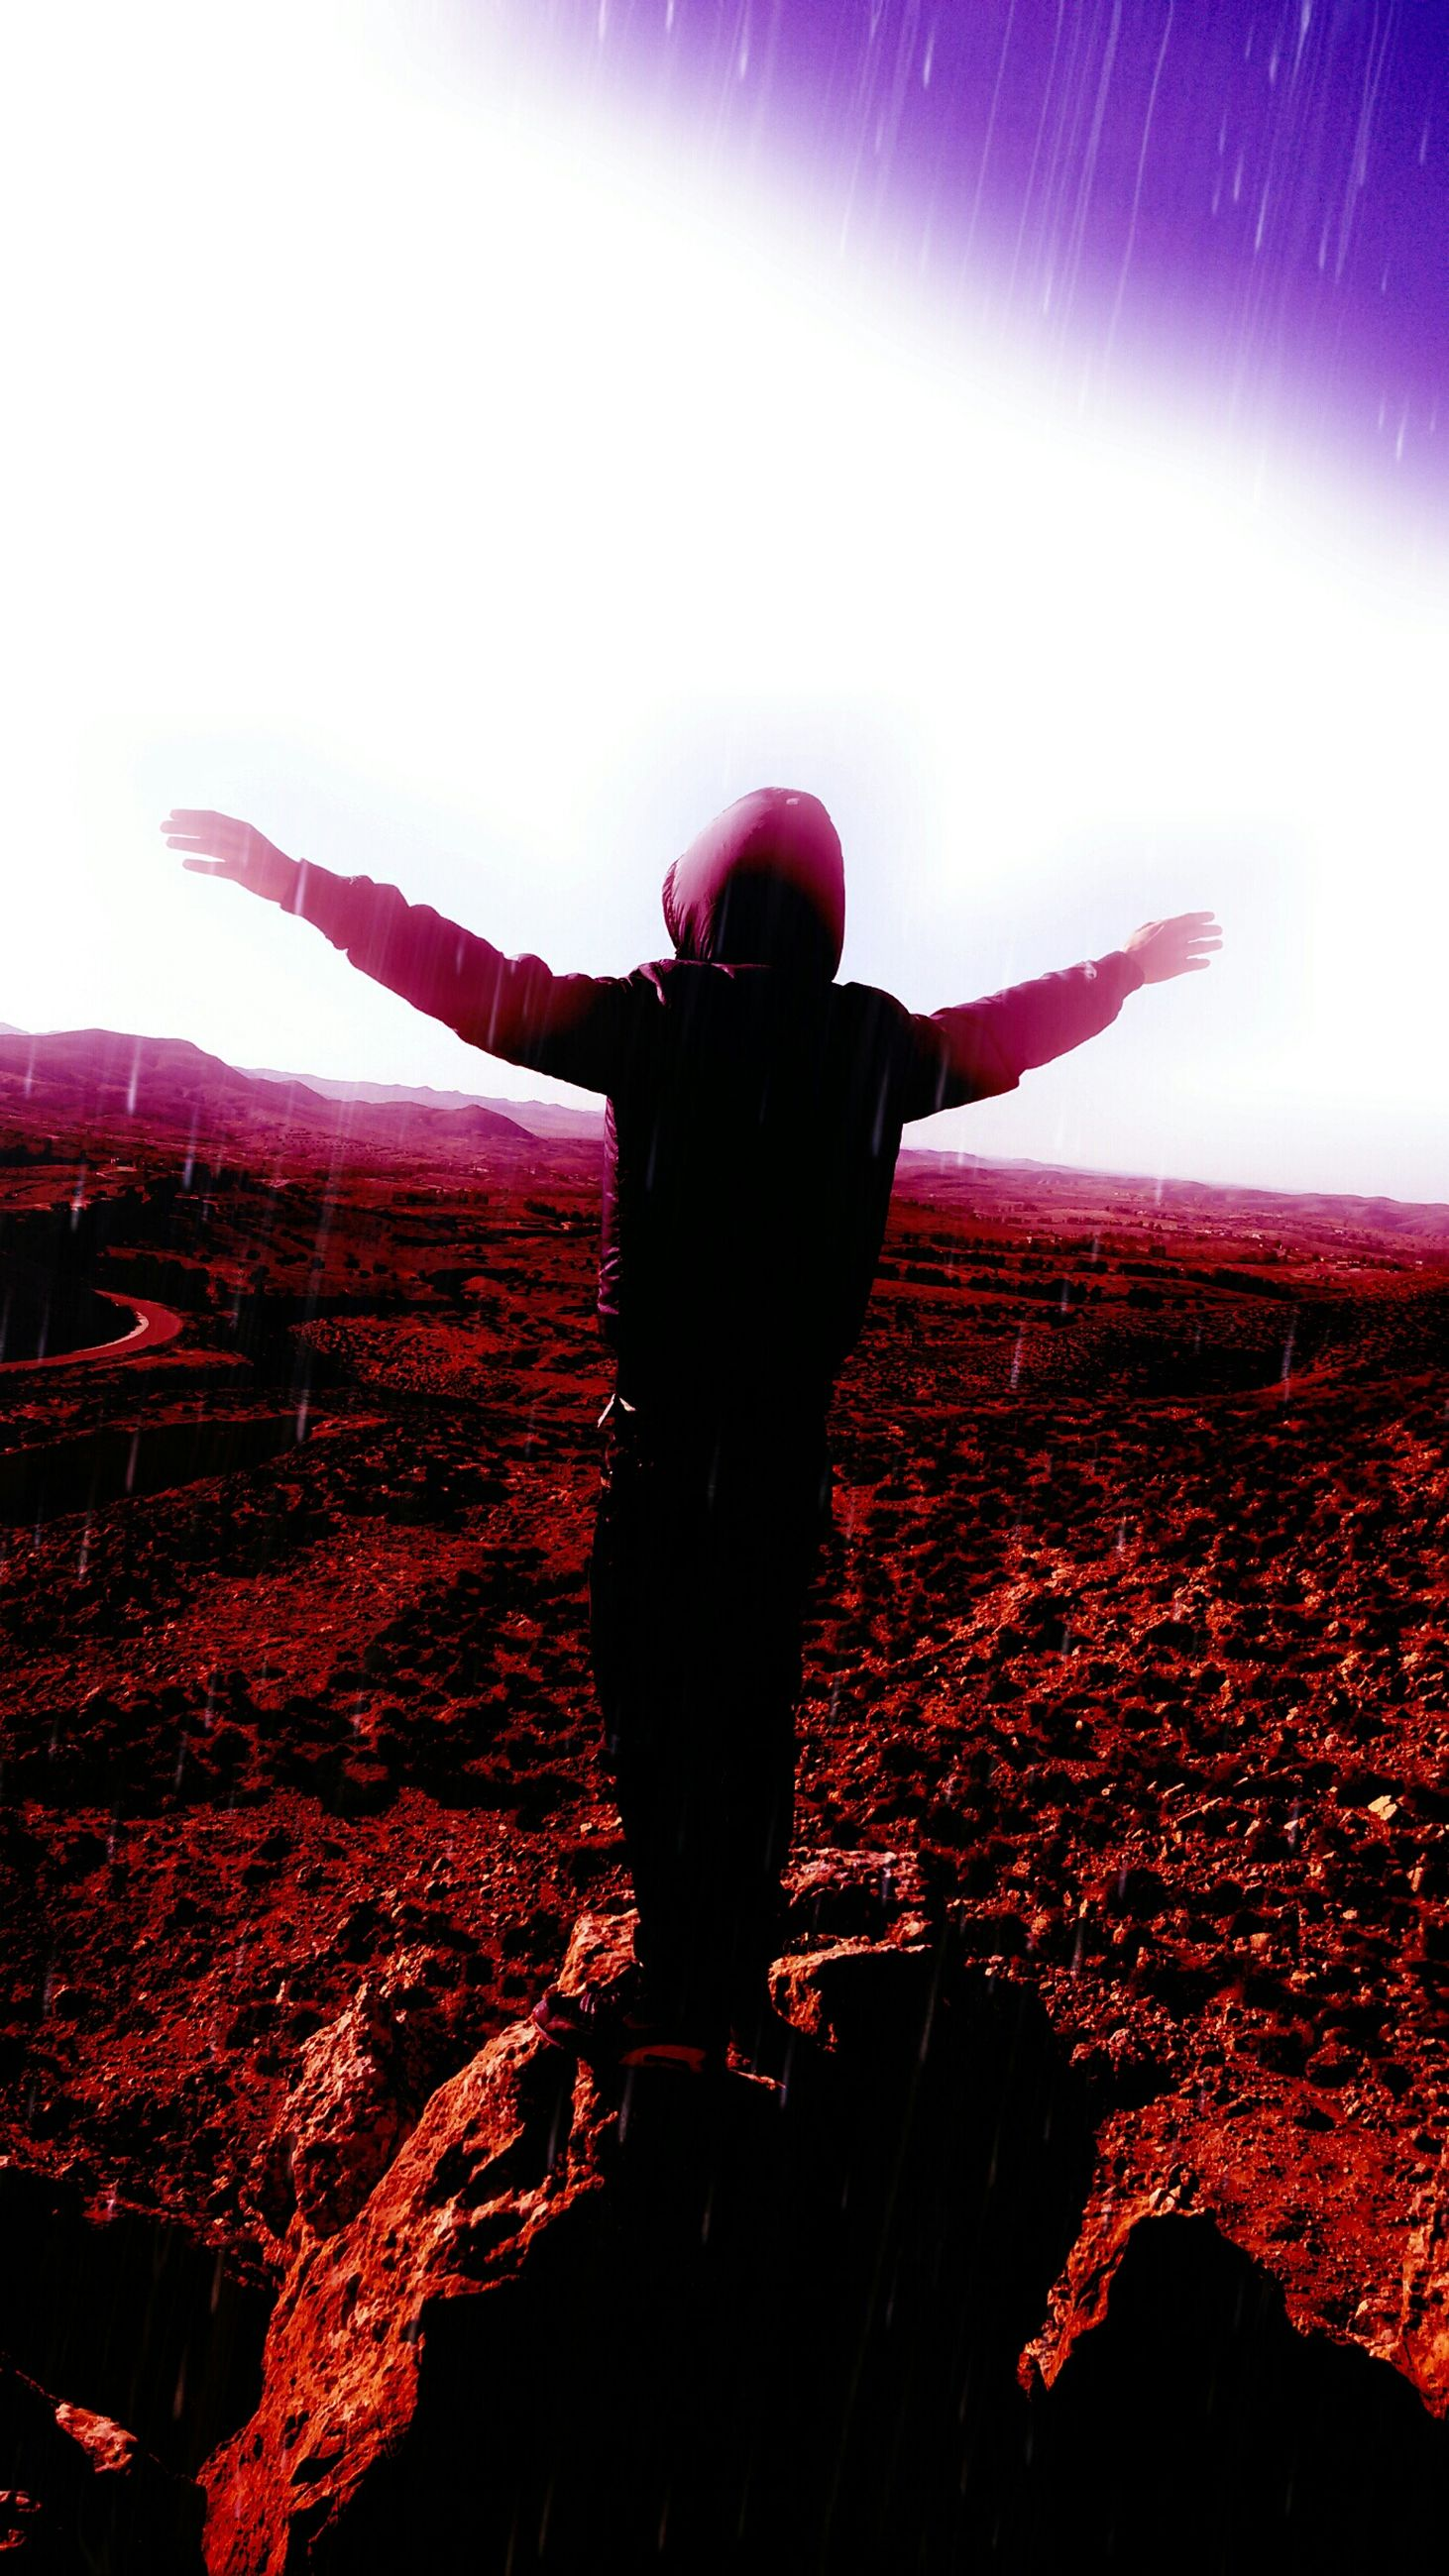 lifestyles, leisure activity, standing, silhouette, full length, person, arms raised, arms outstretched, rear view, sunset, sky, casual clothing, enjoyment, carefree, men, outdoors, three quarter length, clear sky